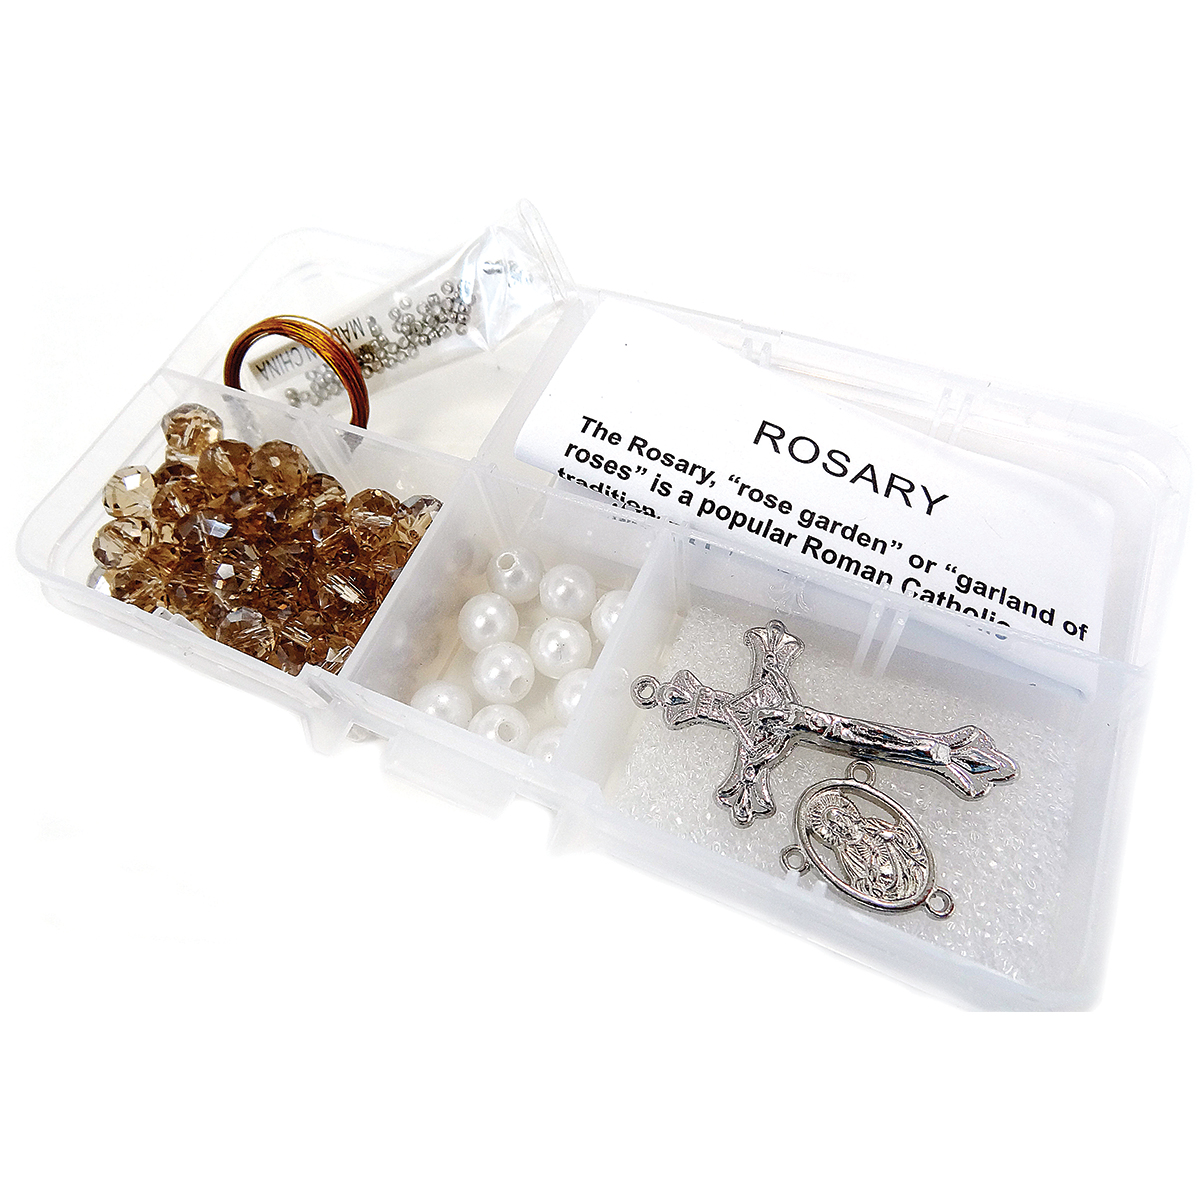 Crystal & Pearl Rosary Bead Kit-Smoky Crystal Beads & White Pearls